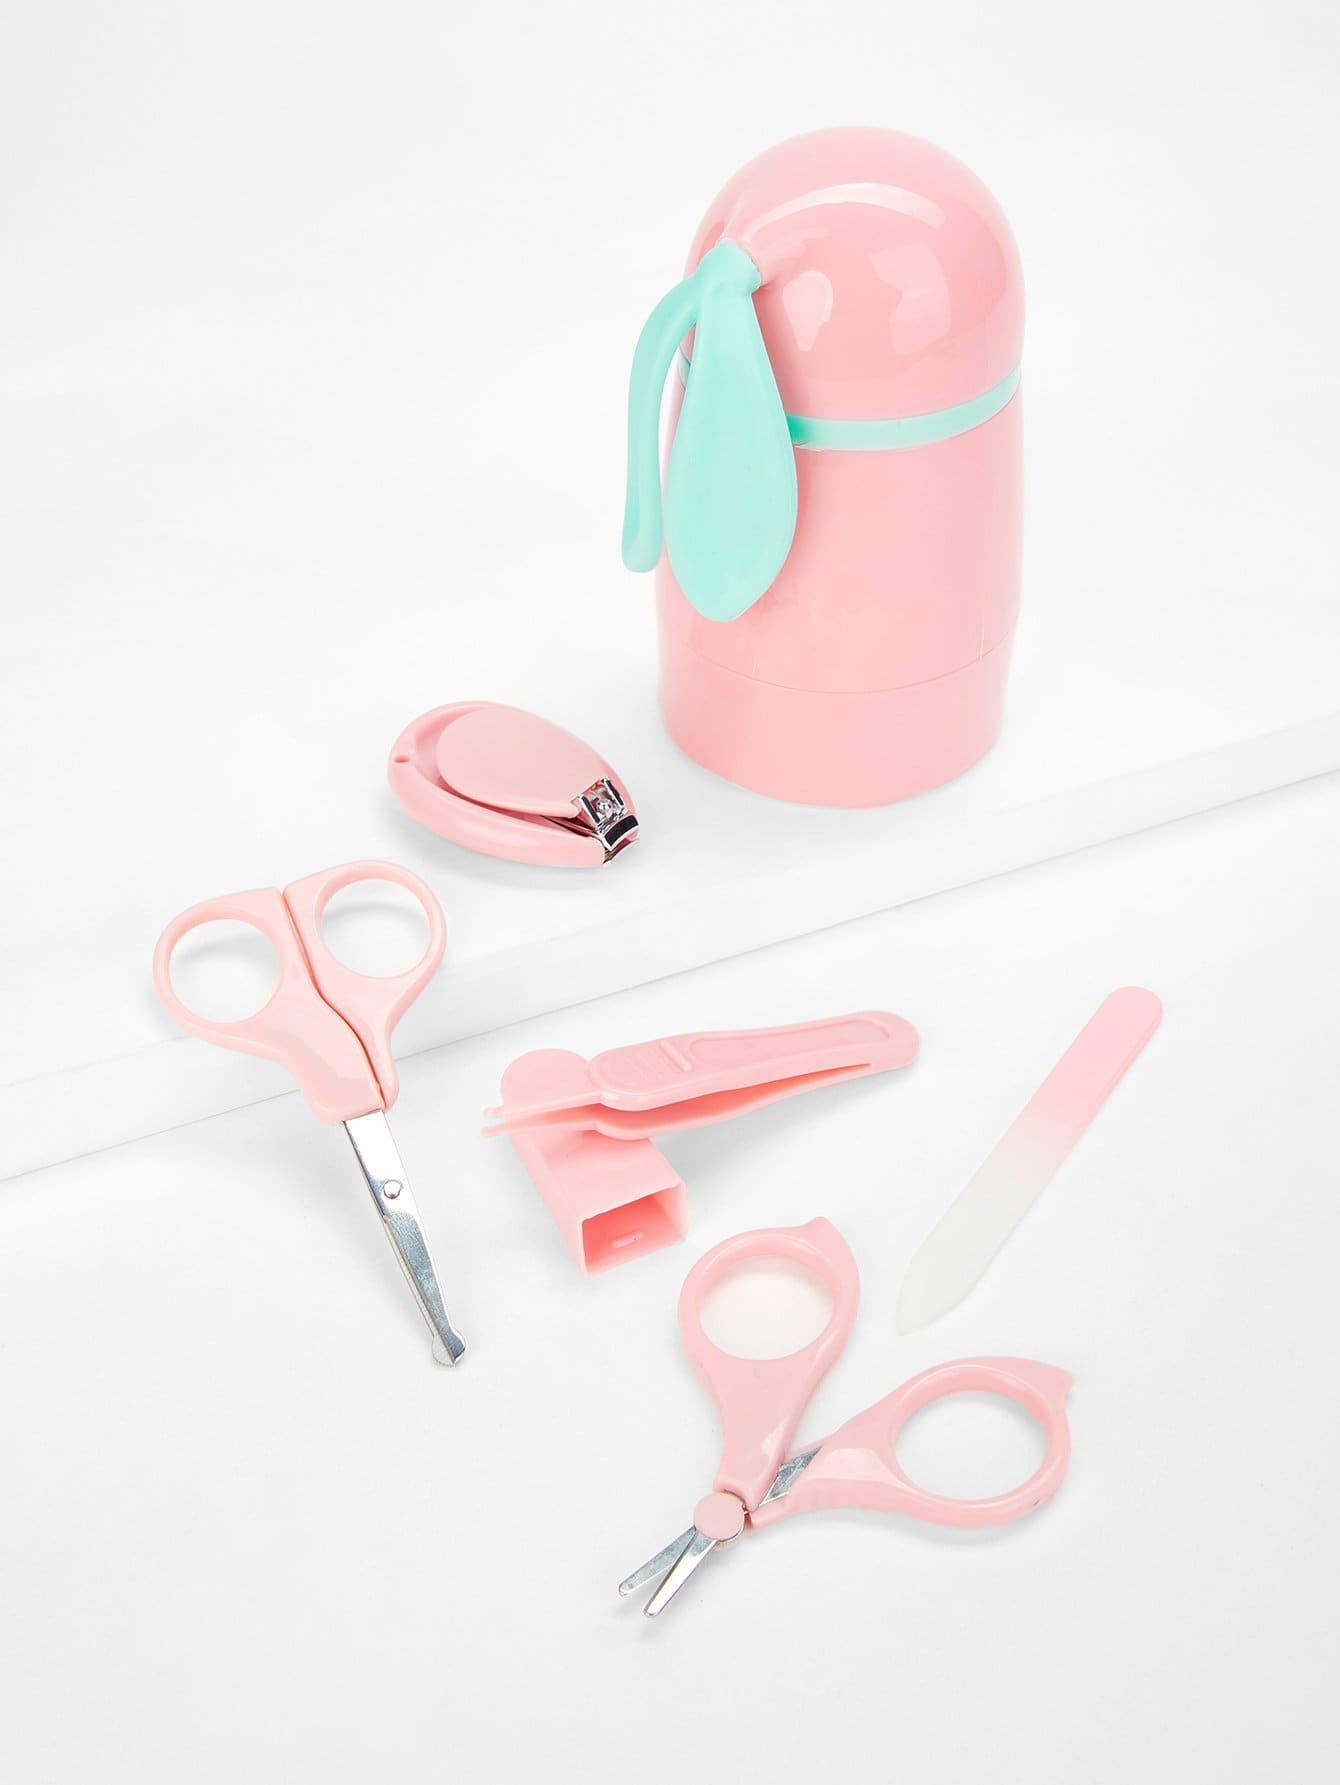 Baby Nail Cutters & Scissors Set nail cutters set with bag